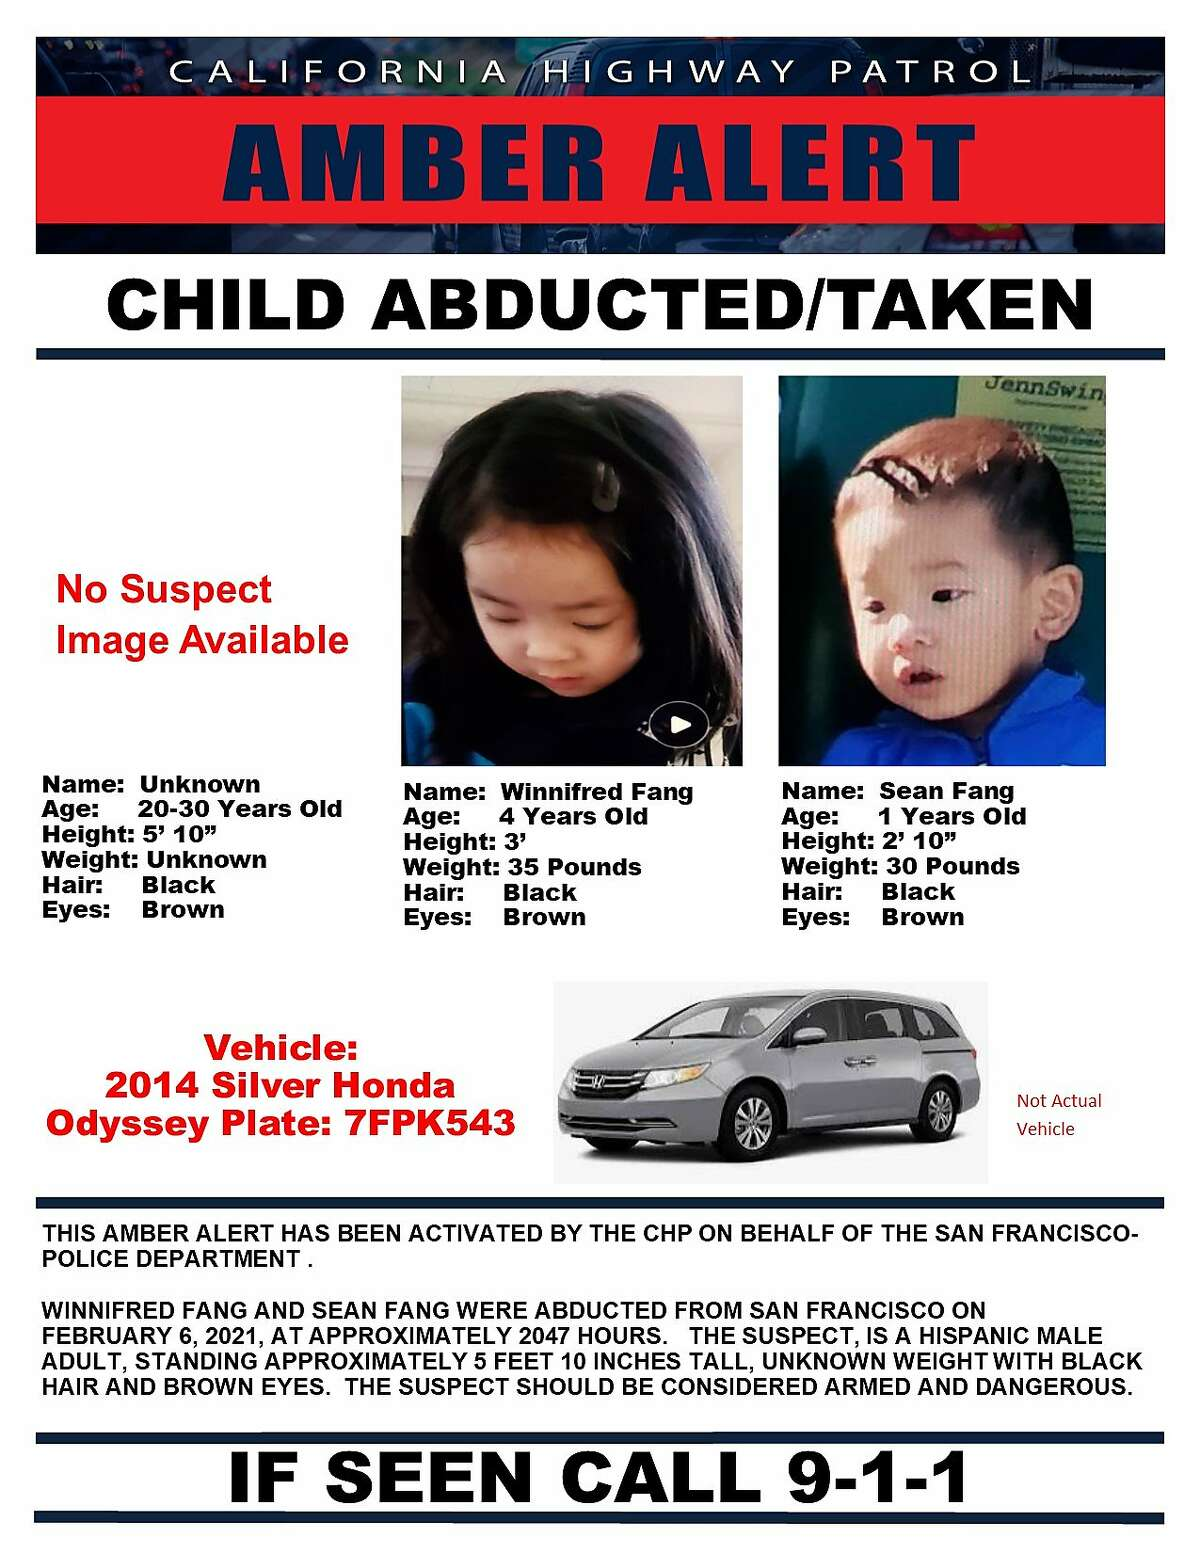 California Highway Patrol issued an alert for two children who were abducted in a San Francisco carjacking Saturday night. Police found the children early Sunday morning.